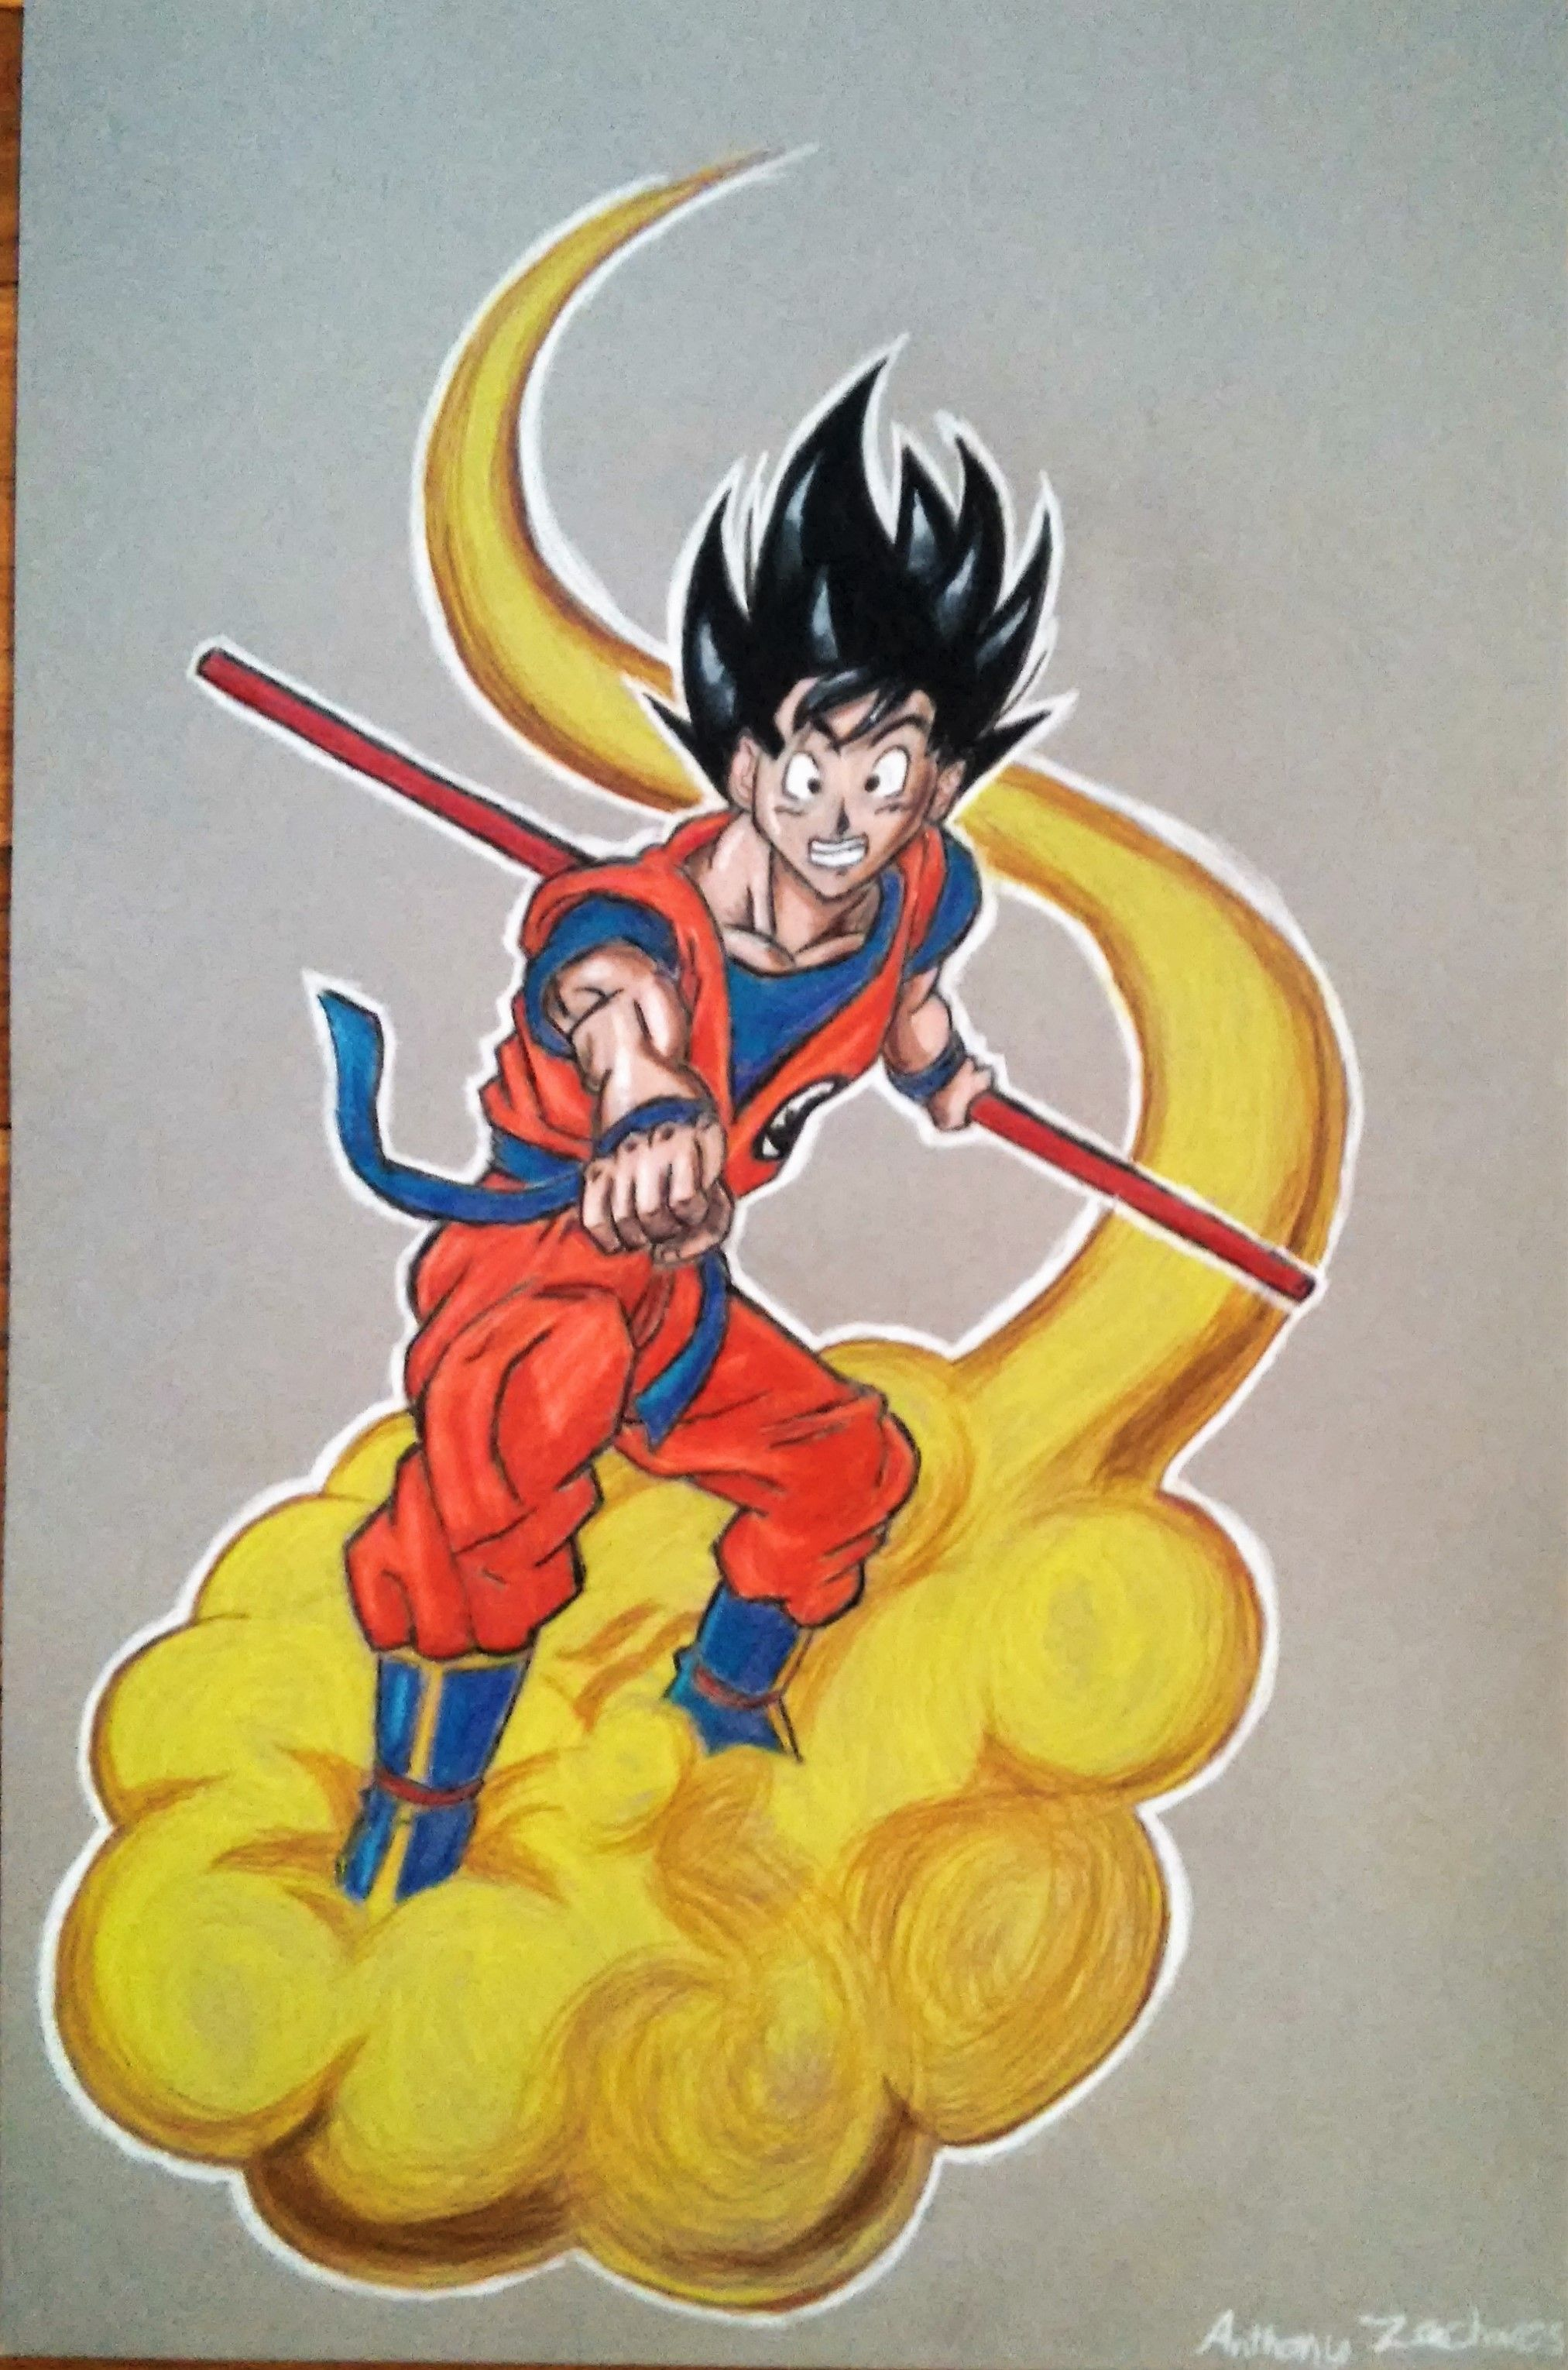 Dragon ball z adult, valentines day nude men